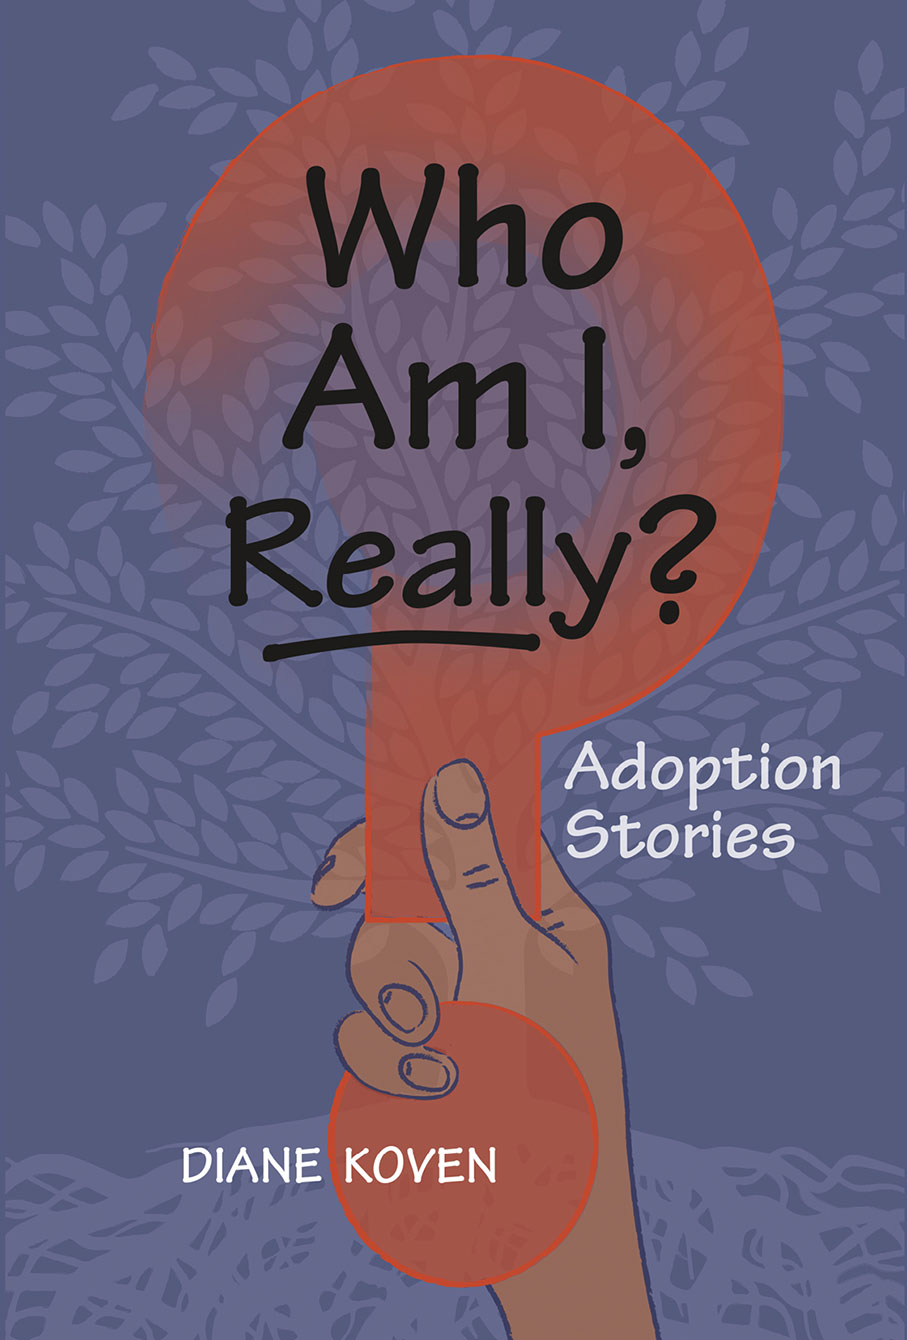 Who Am I, Really?: Adoption Stories